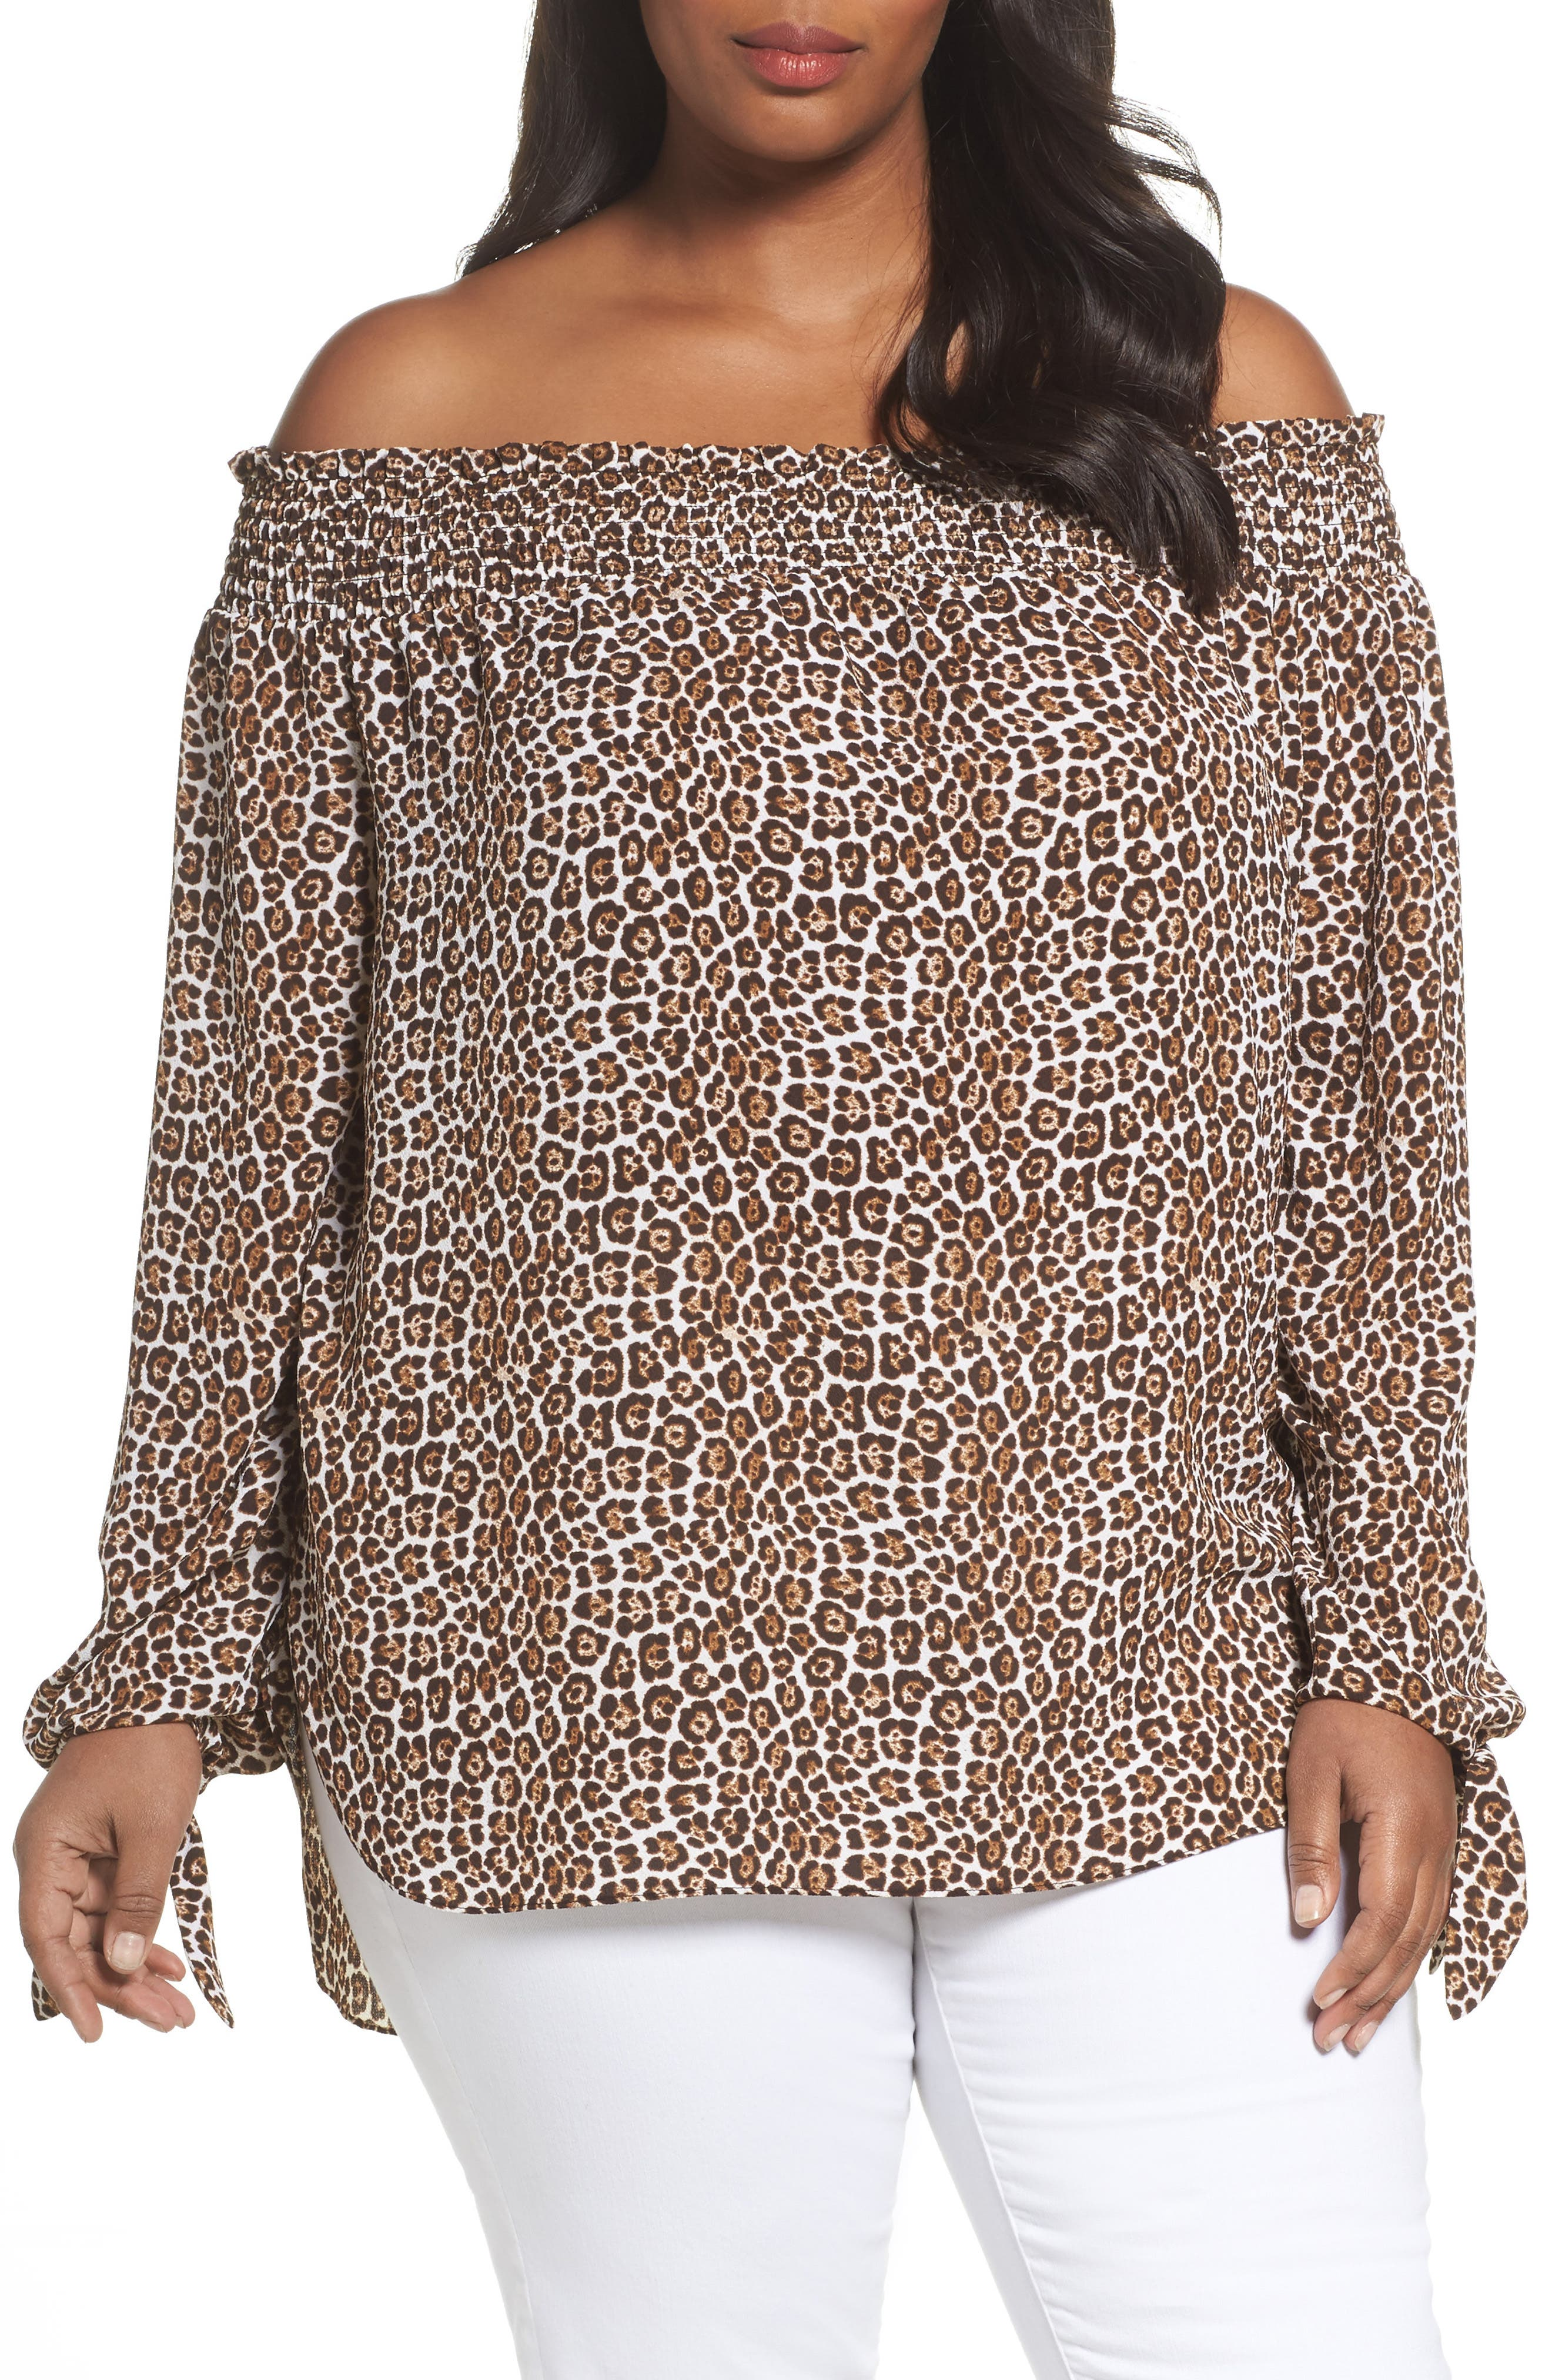 MICHAEL Michael Kors Off the Shoulder Leopard Print Top (Plus Size)